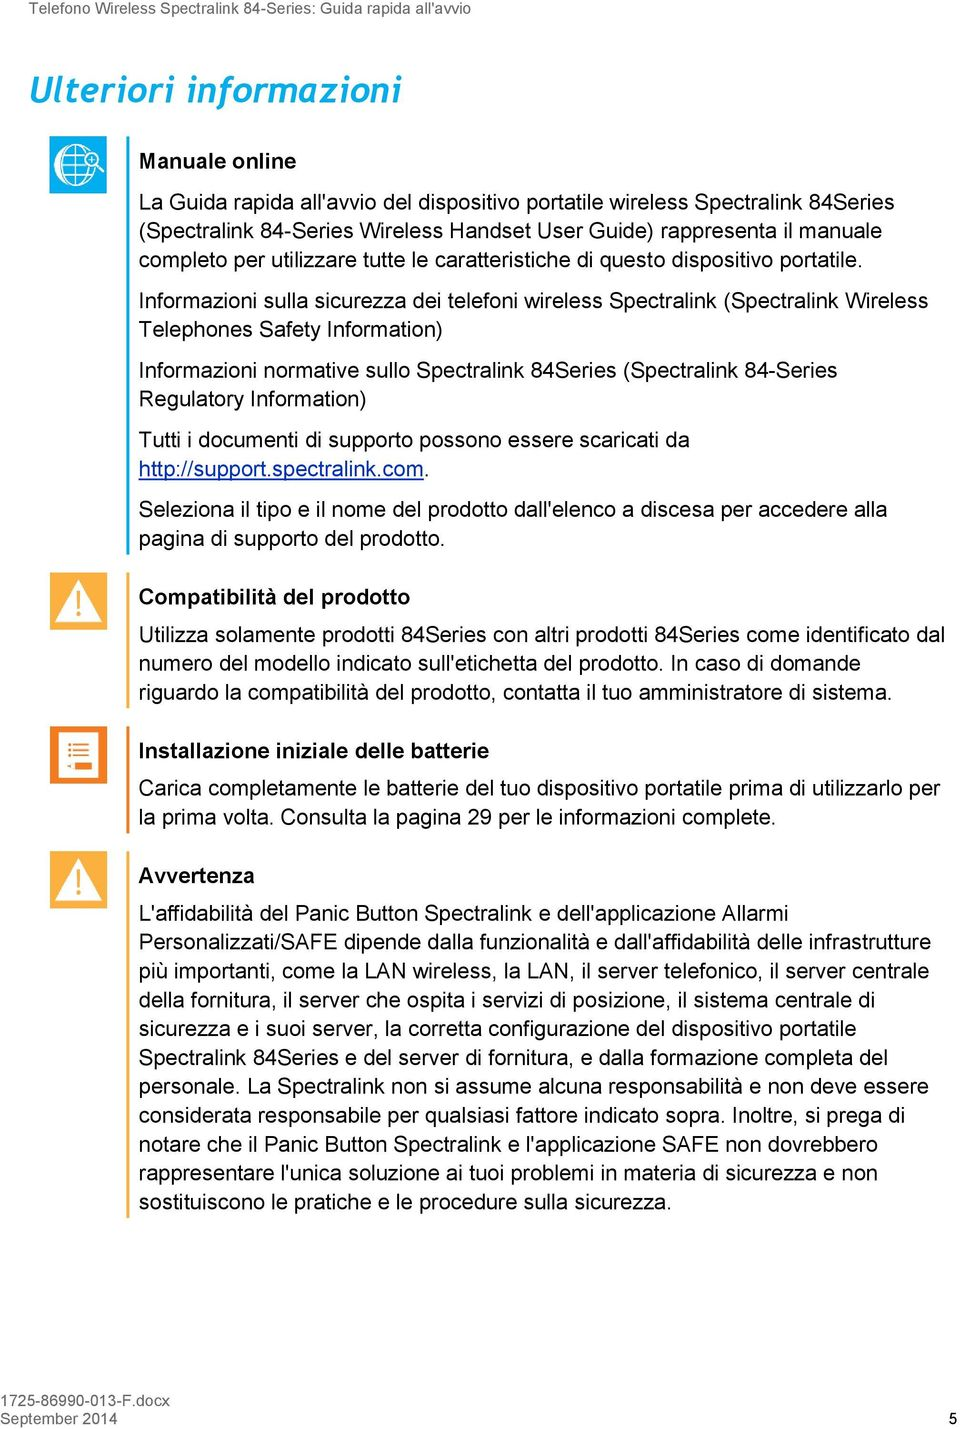 Informazioni sulla sicurezza dei telefoni wireless Spectralink (Spectralink Wireless Telephones Safety Information) Informazioni normative sullo Spectralink 84Series (Spectralink 84-Series Regulatory